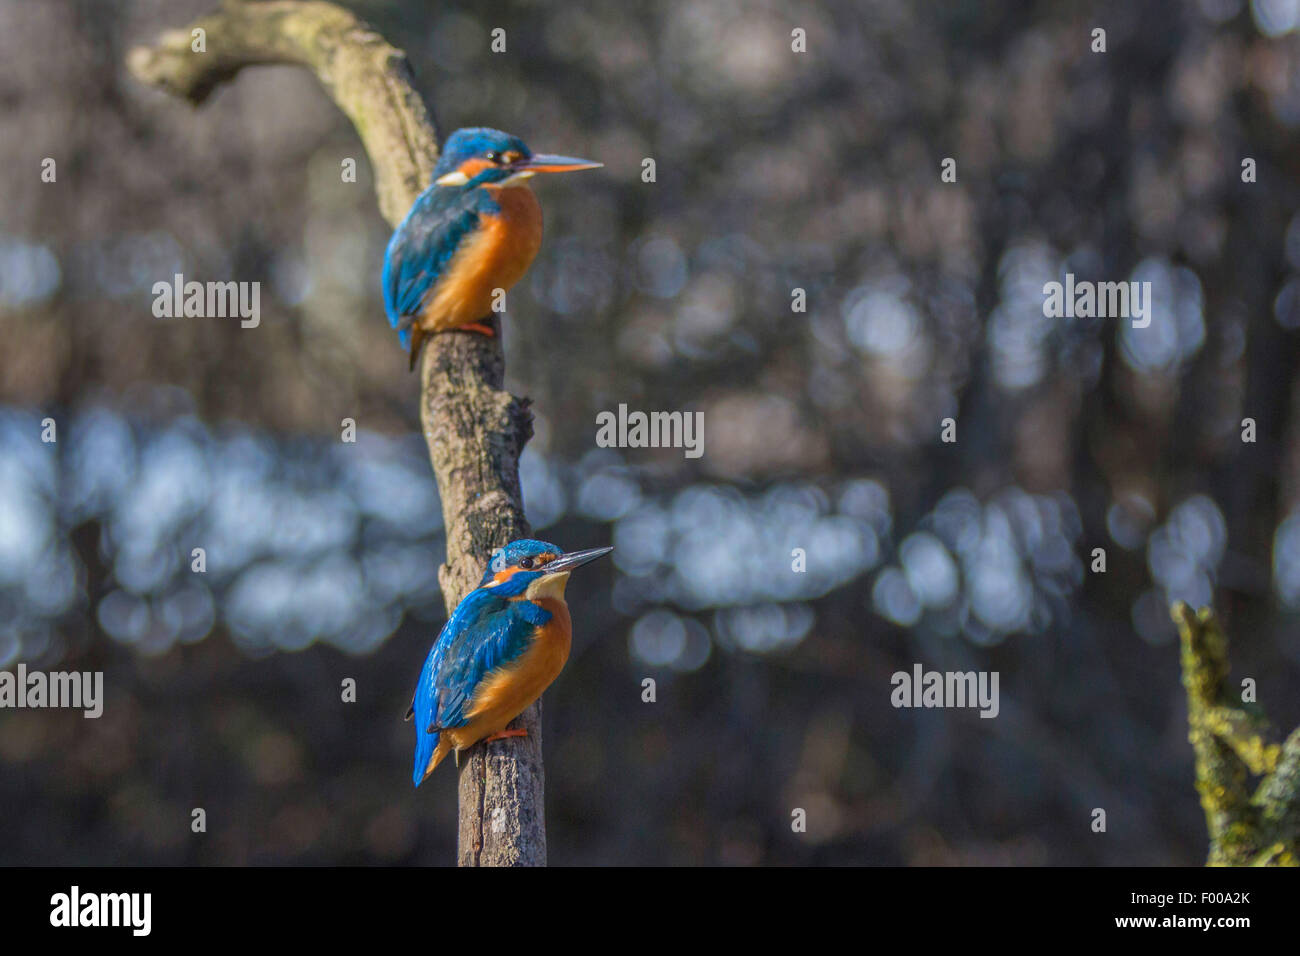 river kingfisher (Alcedo atthis), male and female on their outlook, Germany, Bavaria - Stock Image